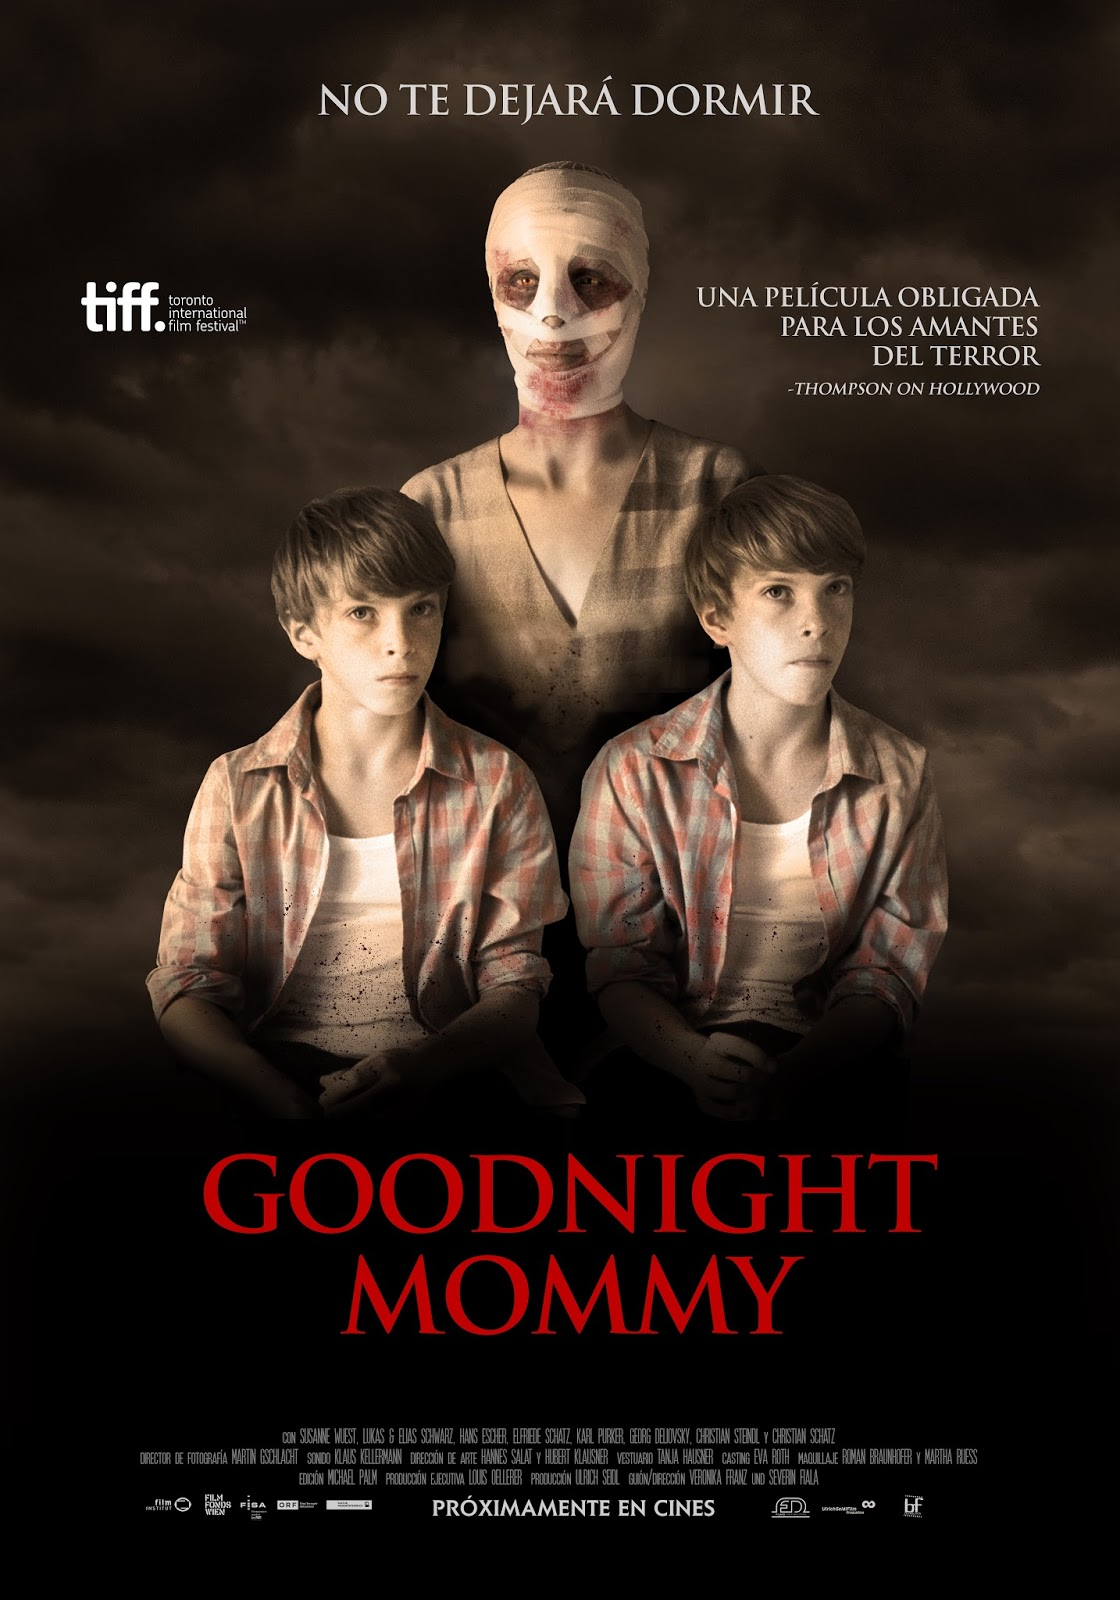 Widzę, widzę / Goodnight Mommy / Ich seh, ich seh